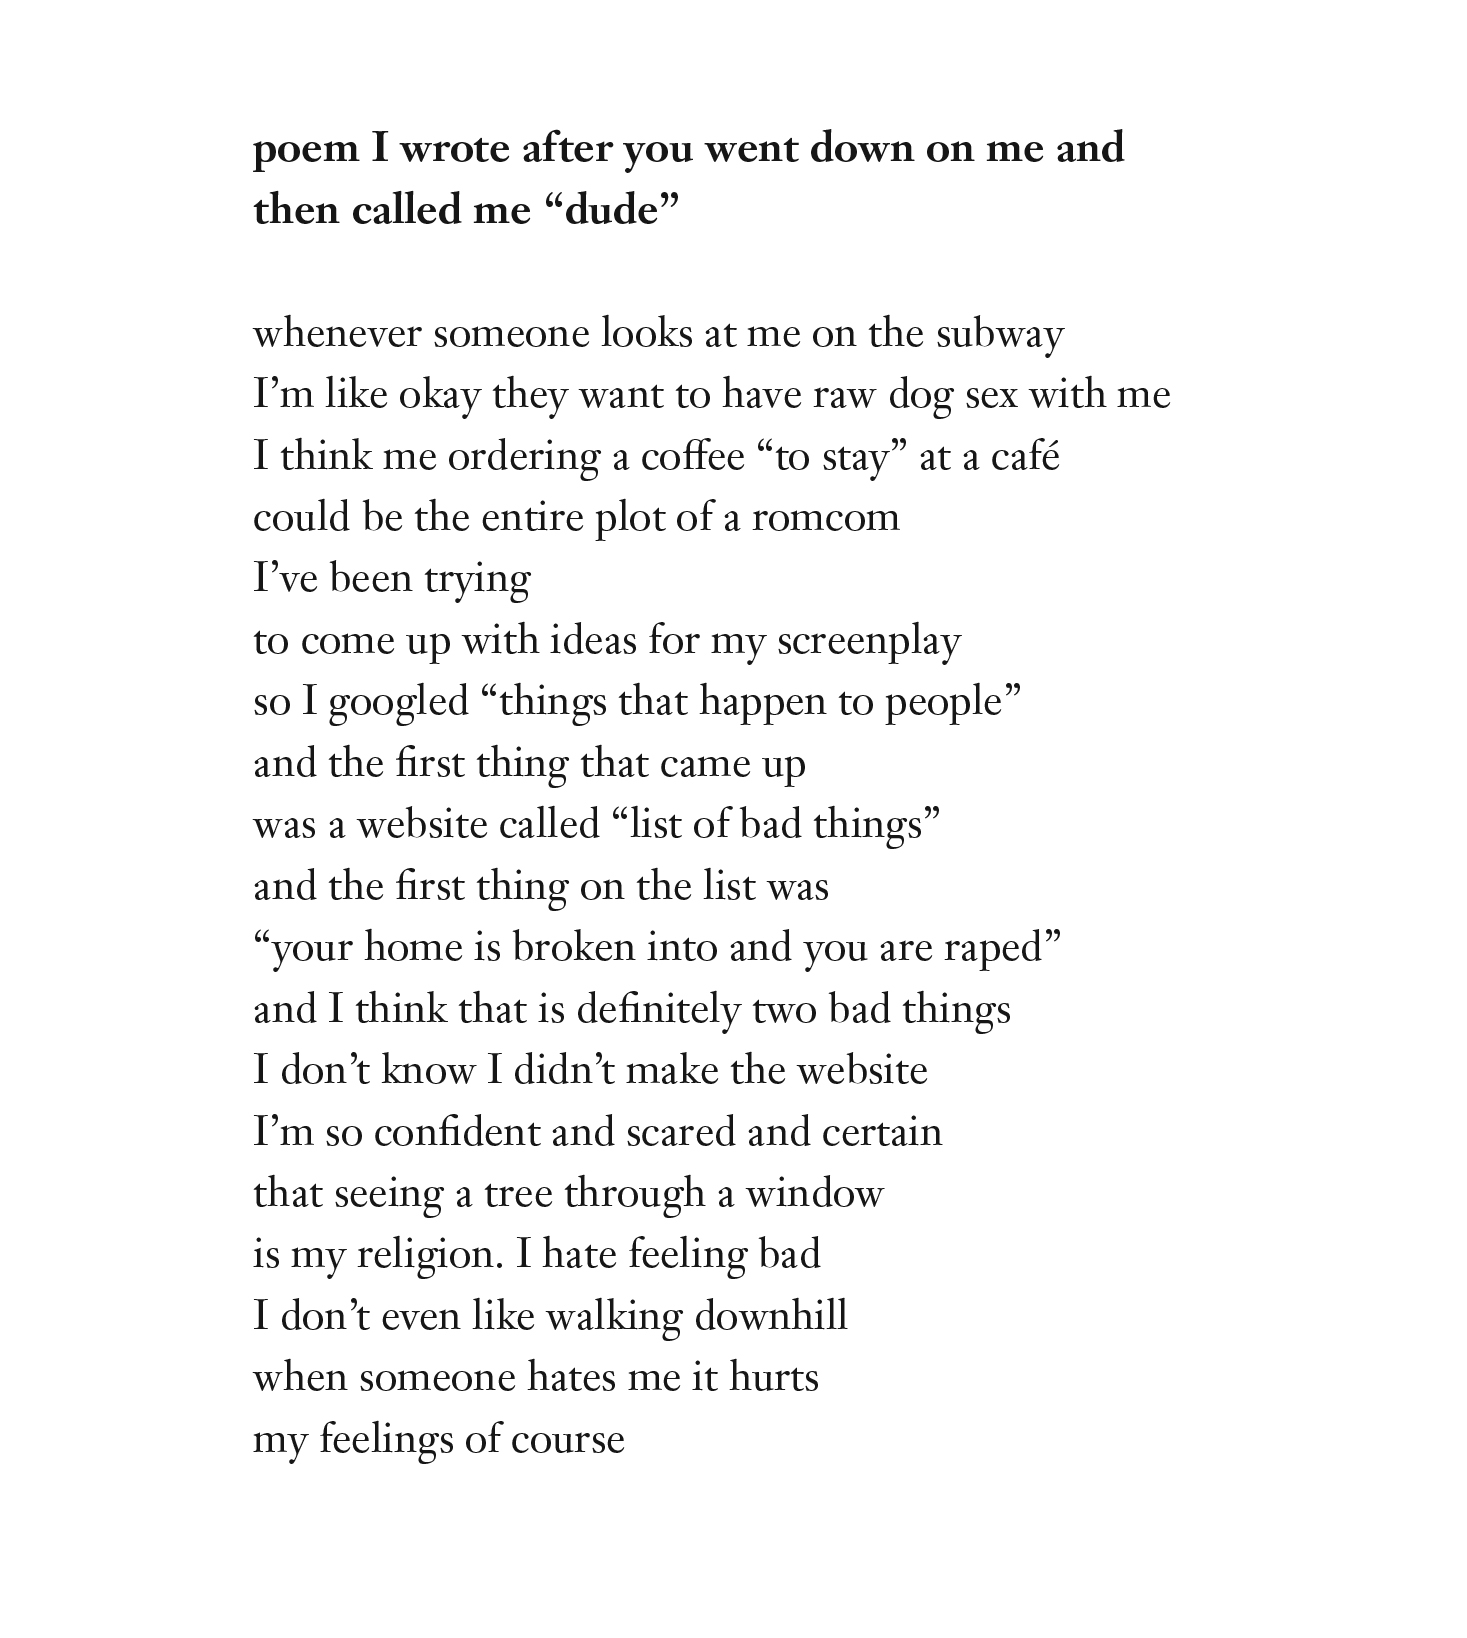 cat cohen cohen poem i wrote after you went down on me and called me dude